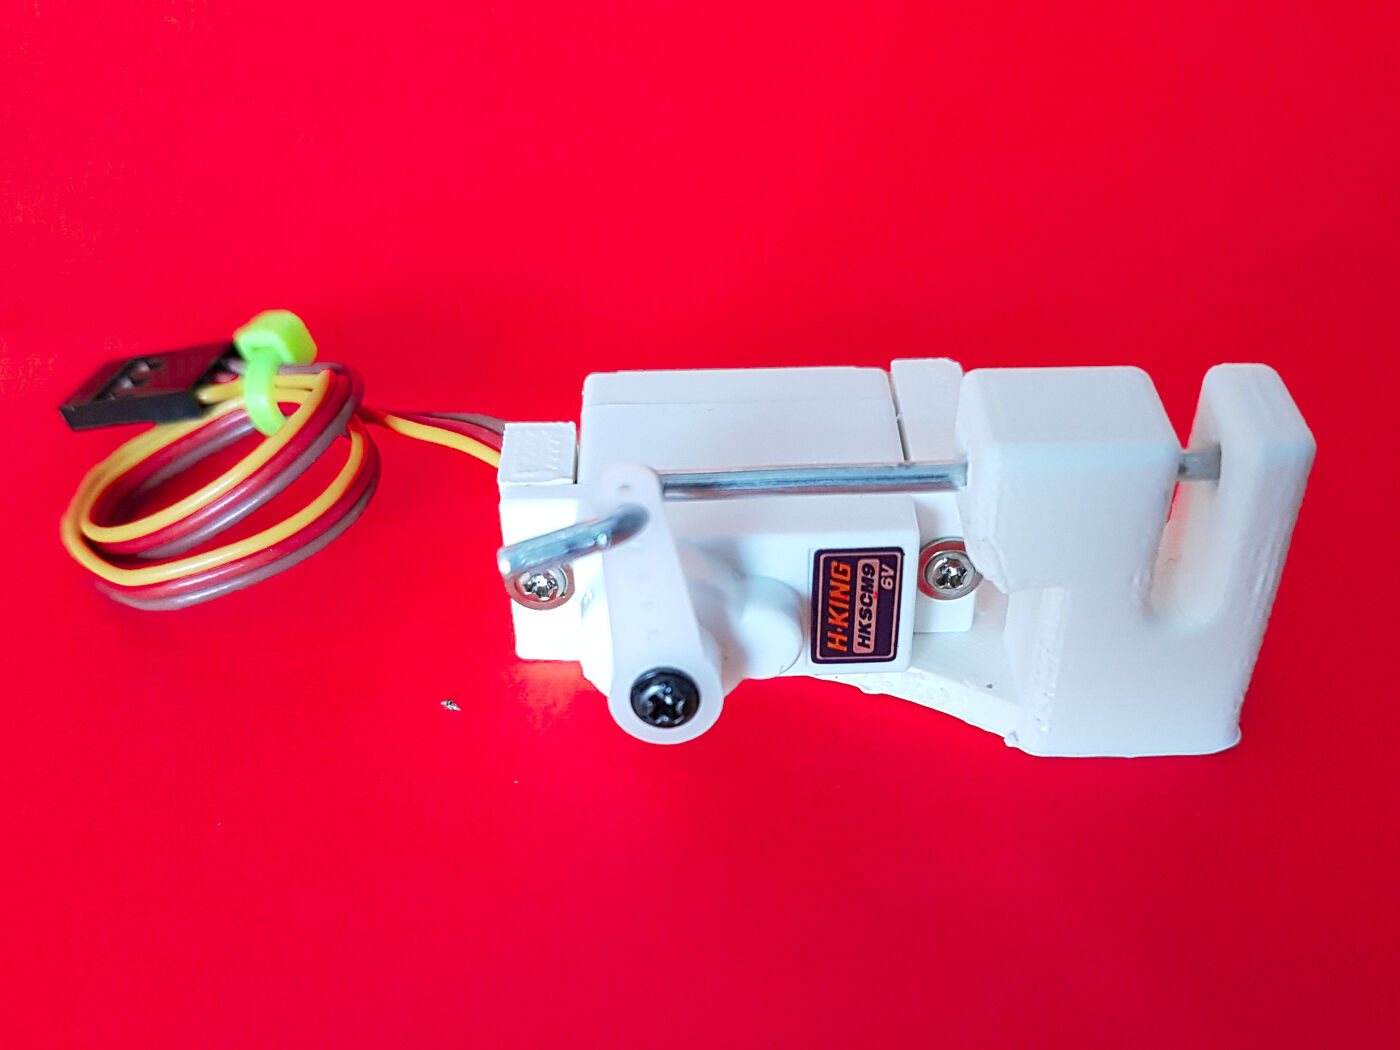 Payload servo release drones aeroplanes bait drop fishing for Drone fishing line release